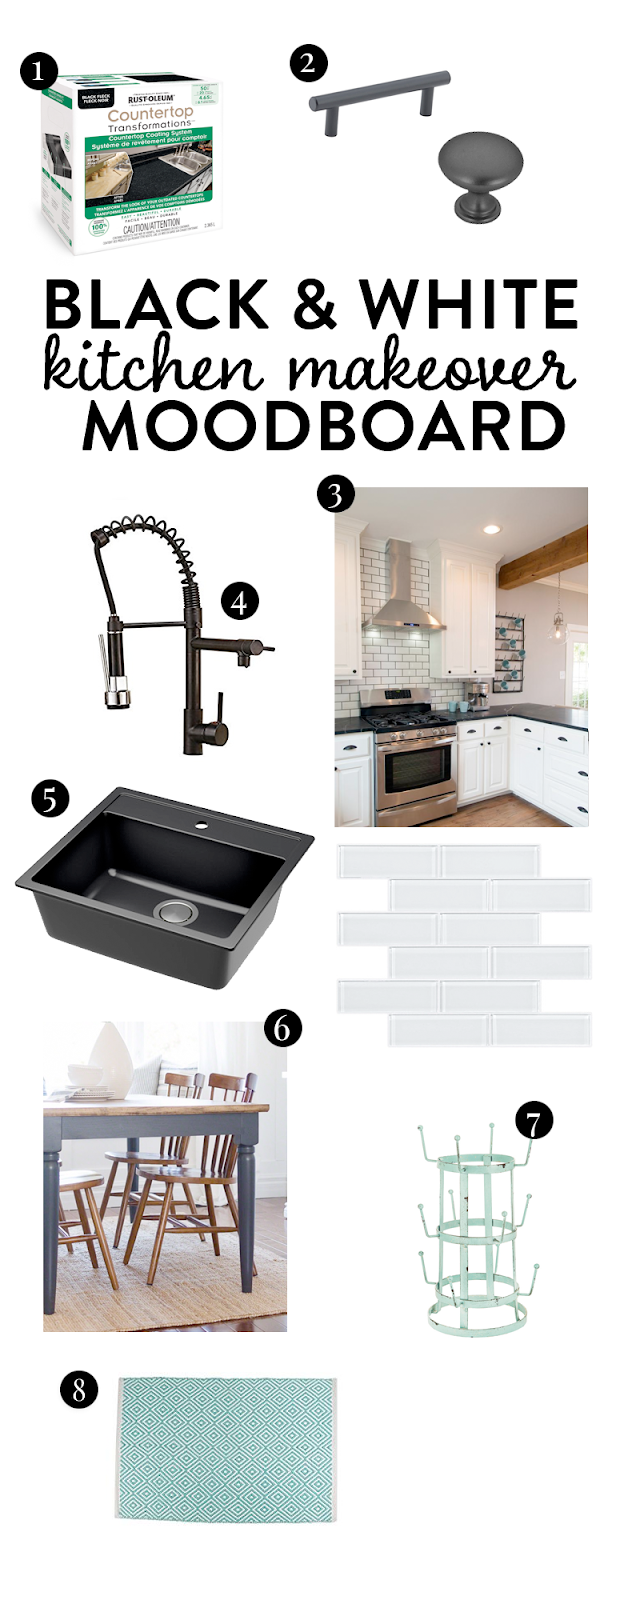 https://southbound.blog/home-decor/black-and-white-kitchen-makeover-moodboard/